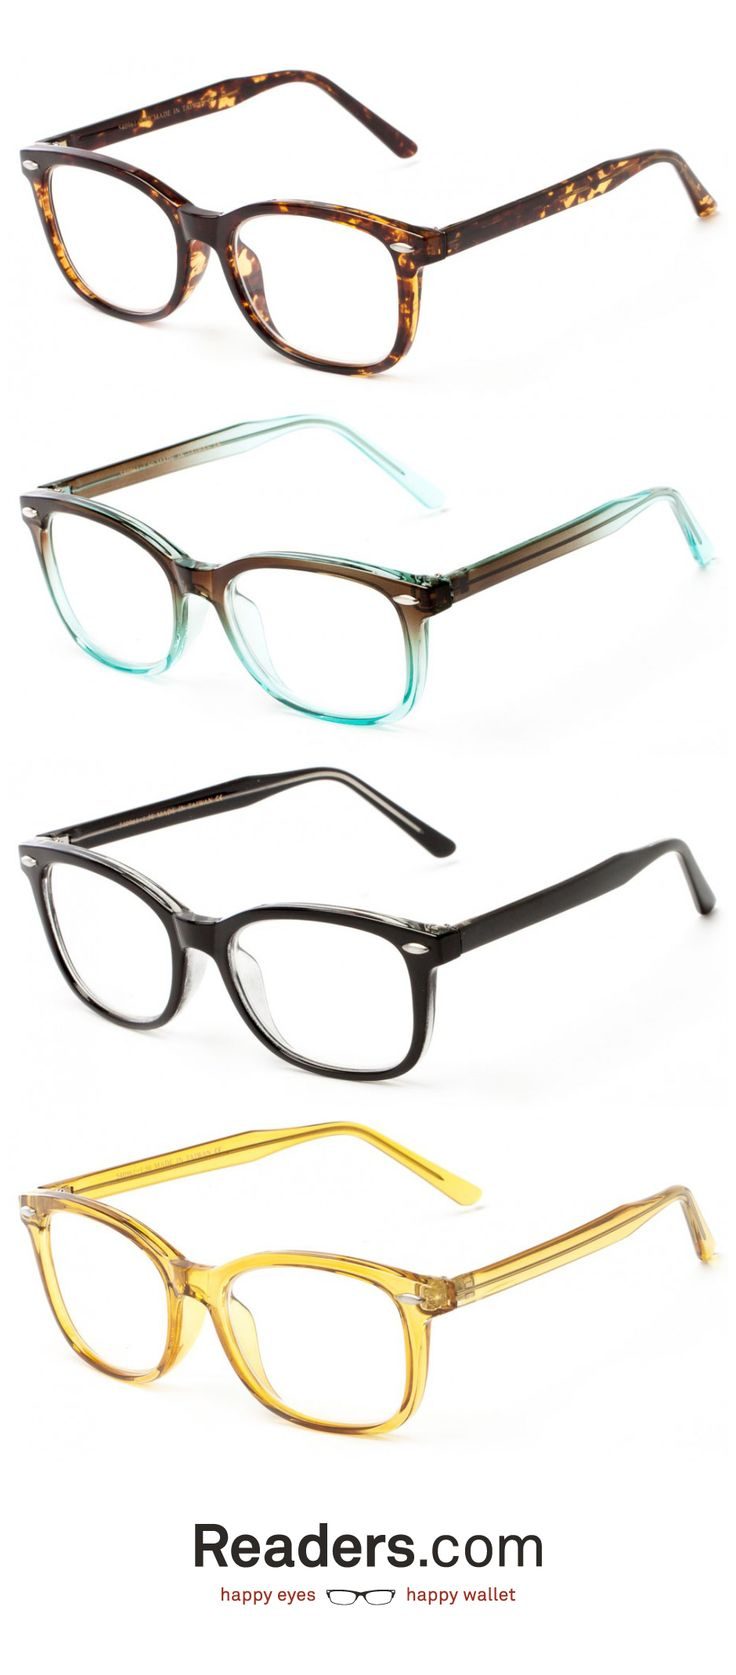 Old Man Glasses Frame : Old Man Glasses Frames Clip Art www.galleryhip.com - The ...